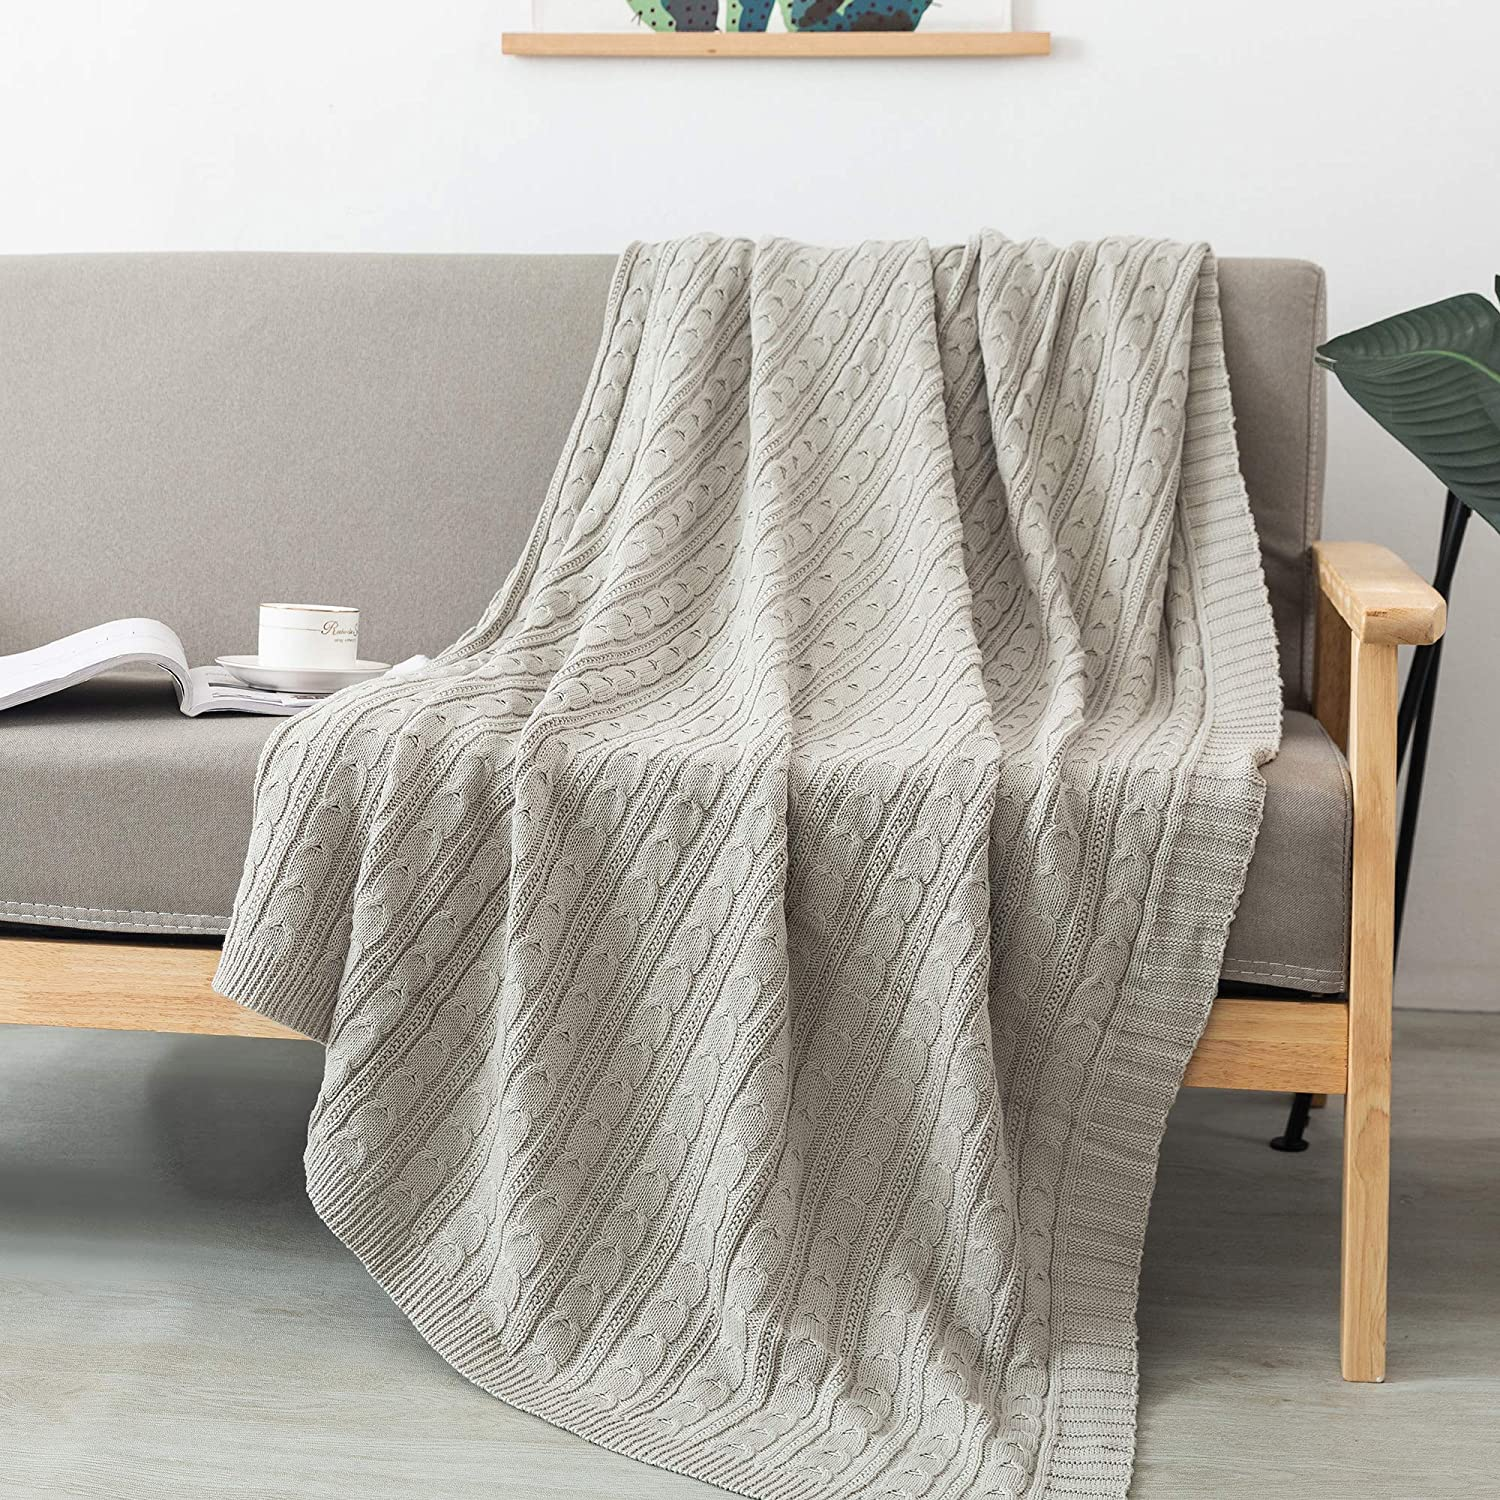 FELIX ANGELA HOME 100% Cotton Knitted Throw, Soft Lightweight Throws for Couch Sofa Chair Bed, 50